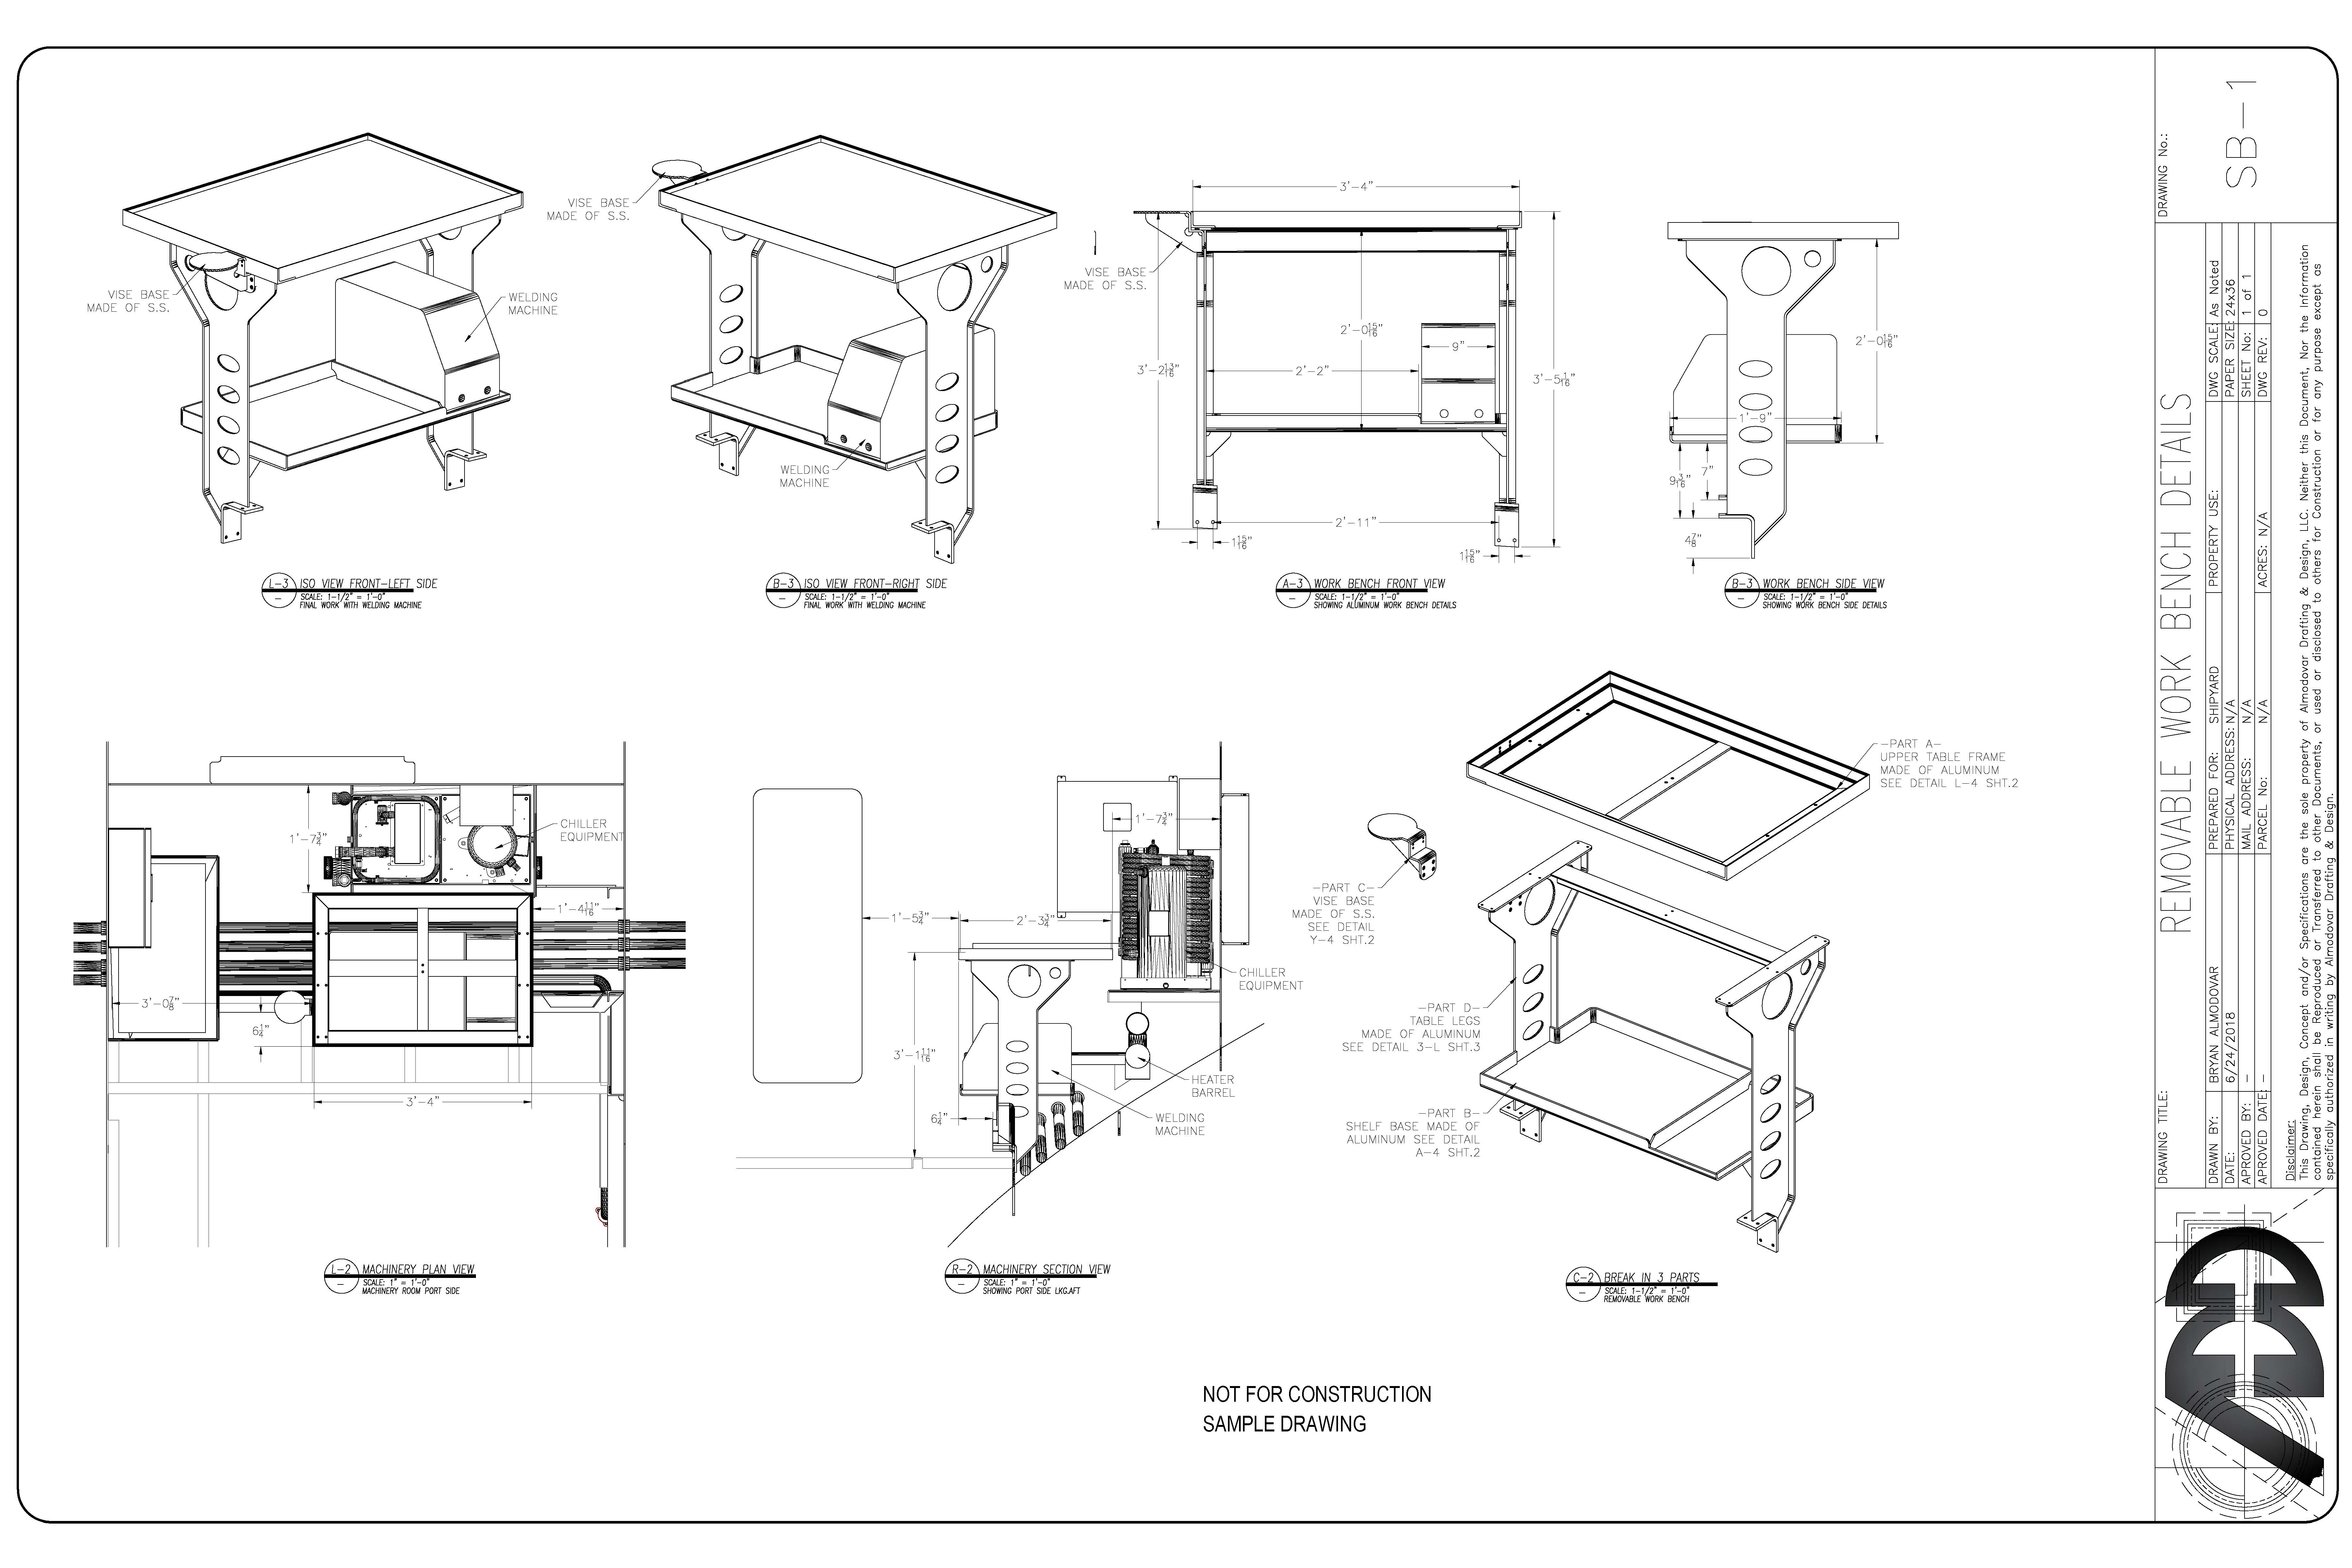 Removable Work Bench Details_Page_1.jpg